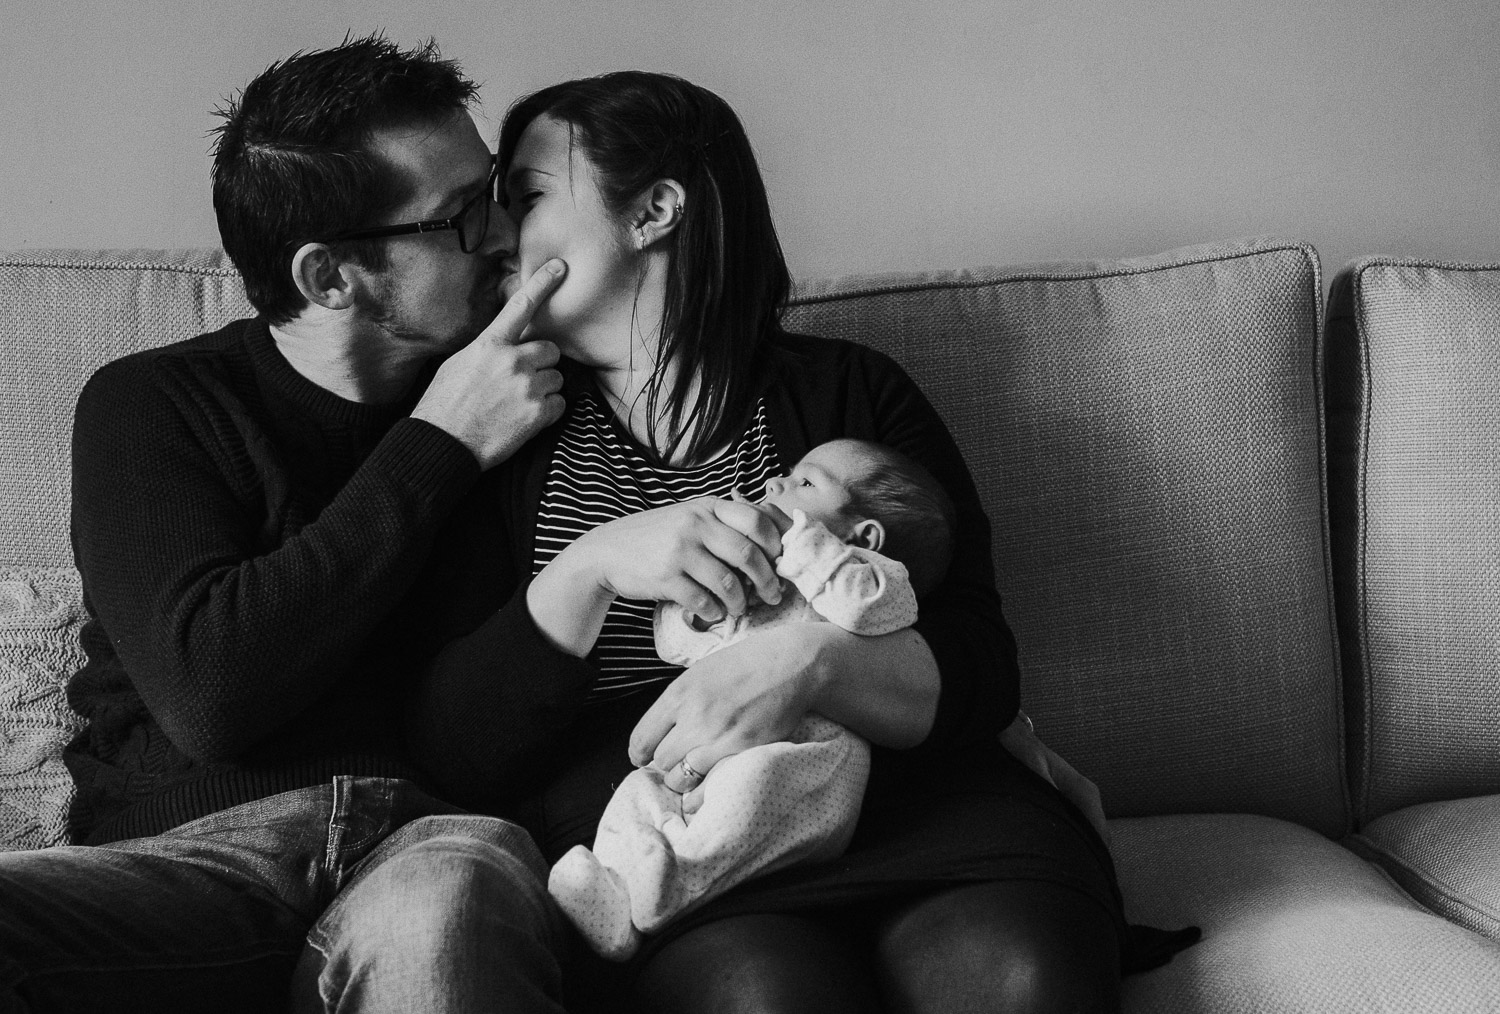 tunbridge wells baby photographer parents and newborn on sofa black and white kissing